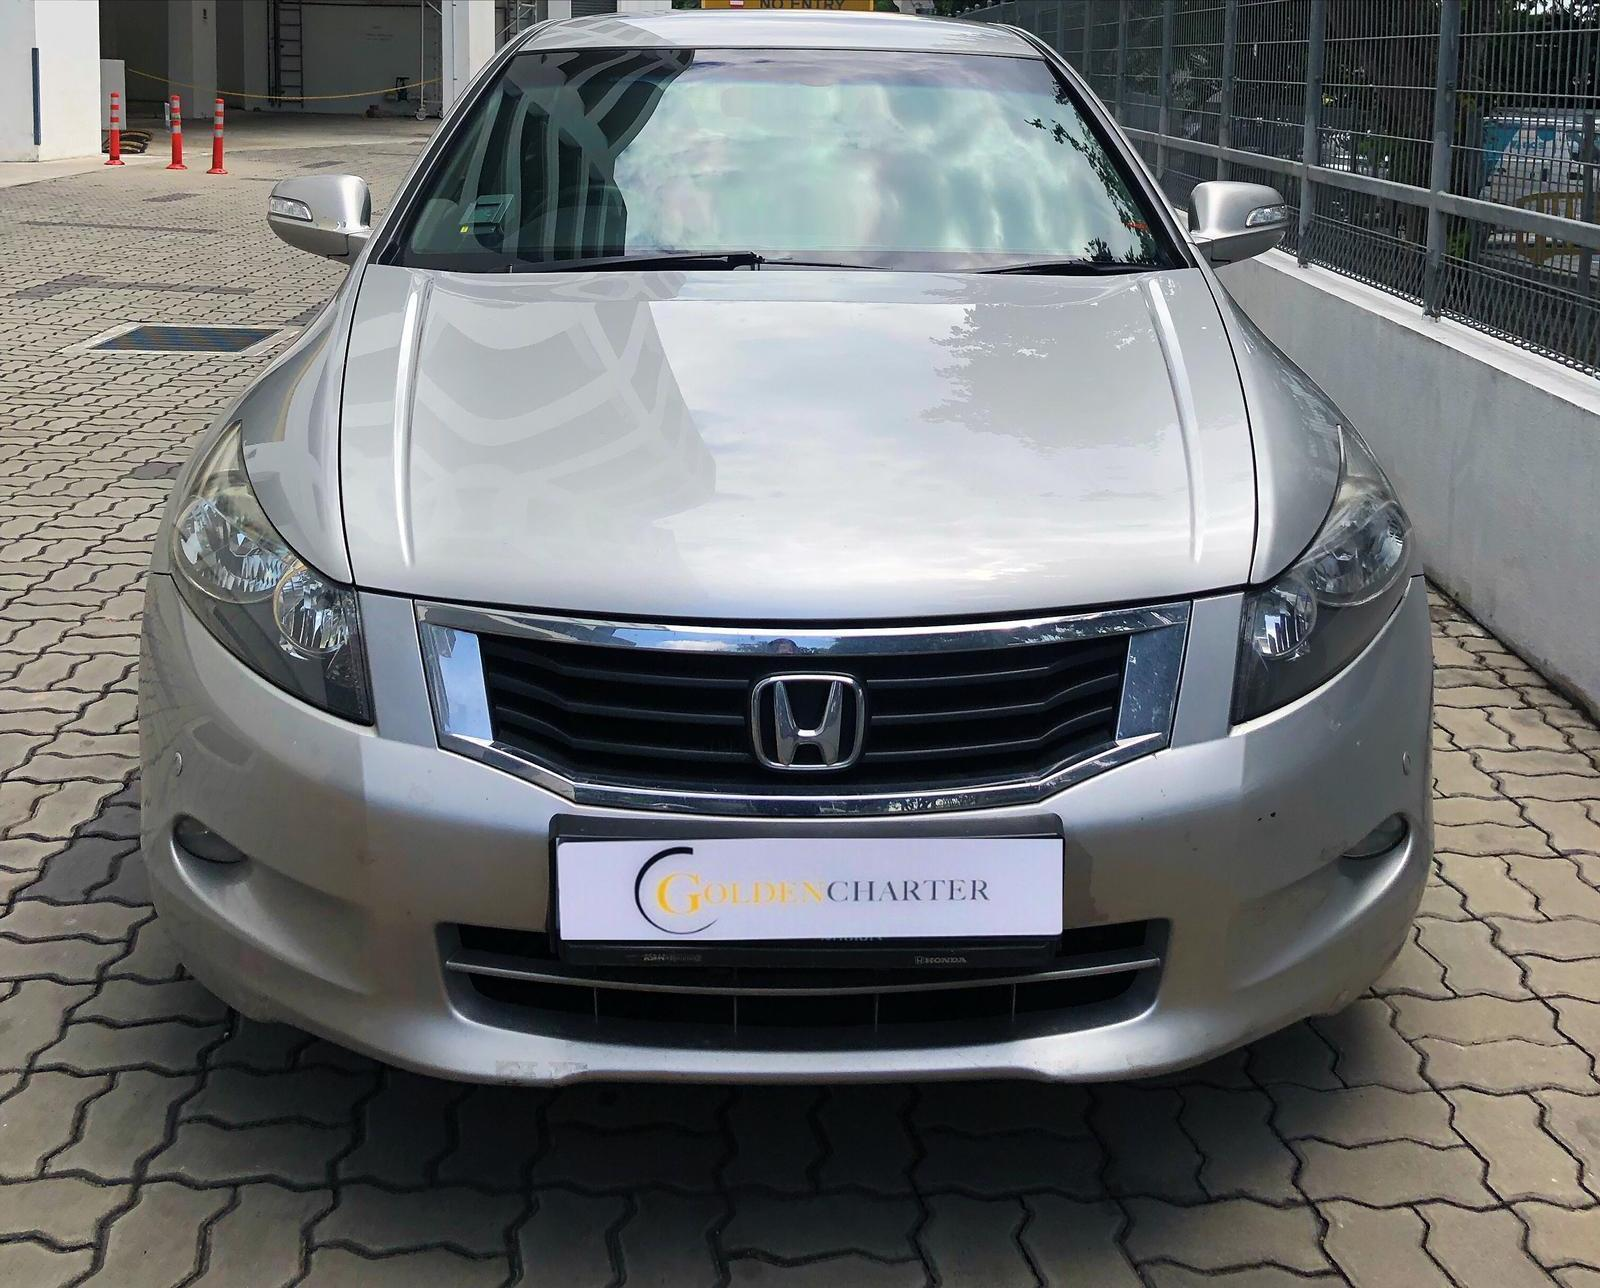 Honda Accord 2.4 for Grab Gojek ryde Personal use cheapest rental